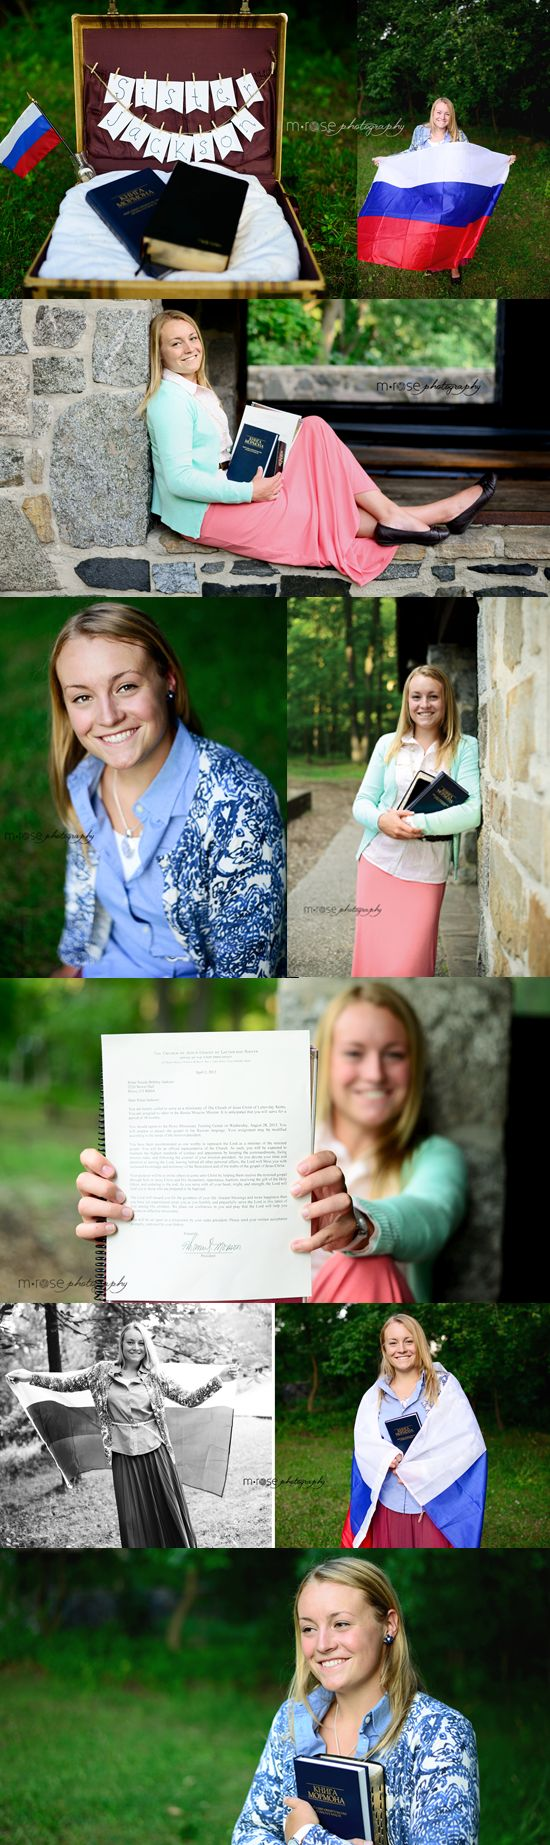 I like the Flag idea, especially for missionary kids. Sister Missionary Photos   M Rose Photography